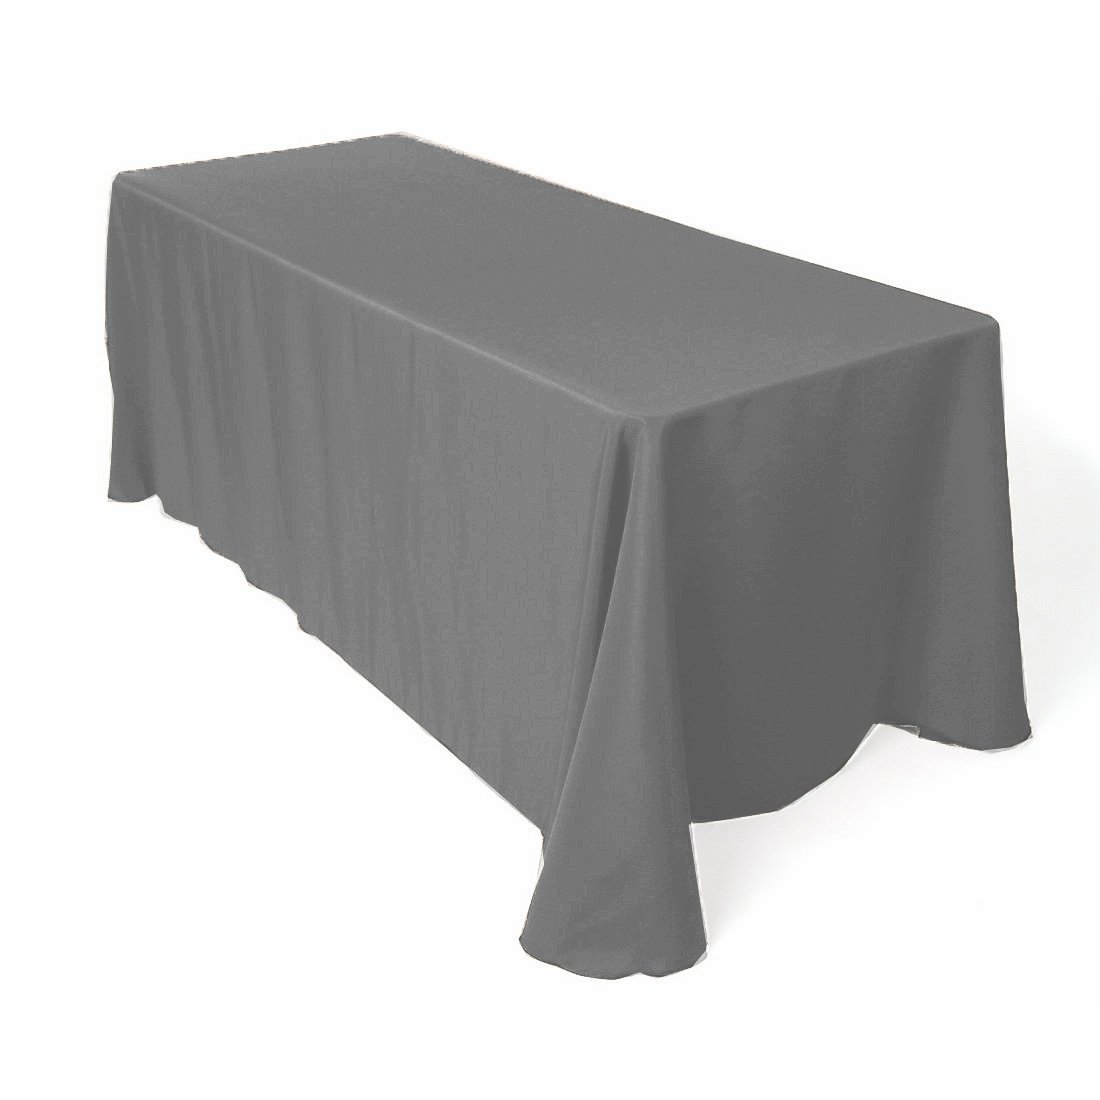 Gee Di Moda Rectangle Tablecloth - 90 x 156 Inch - Charcoal Rectangular Table Cloth for 8 Foot Table in Washable Polyester - Great for Buffet Table, Parties, Holiday Dinner, Wedding & More